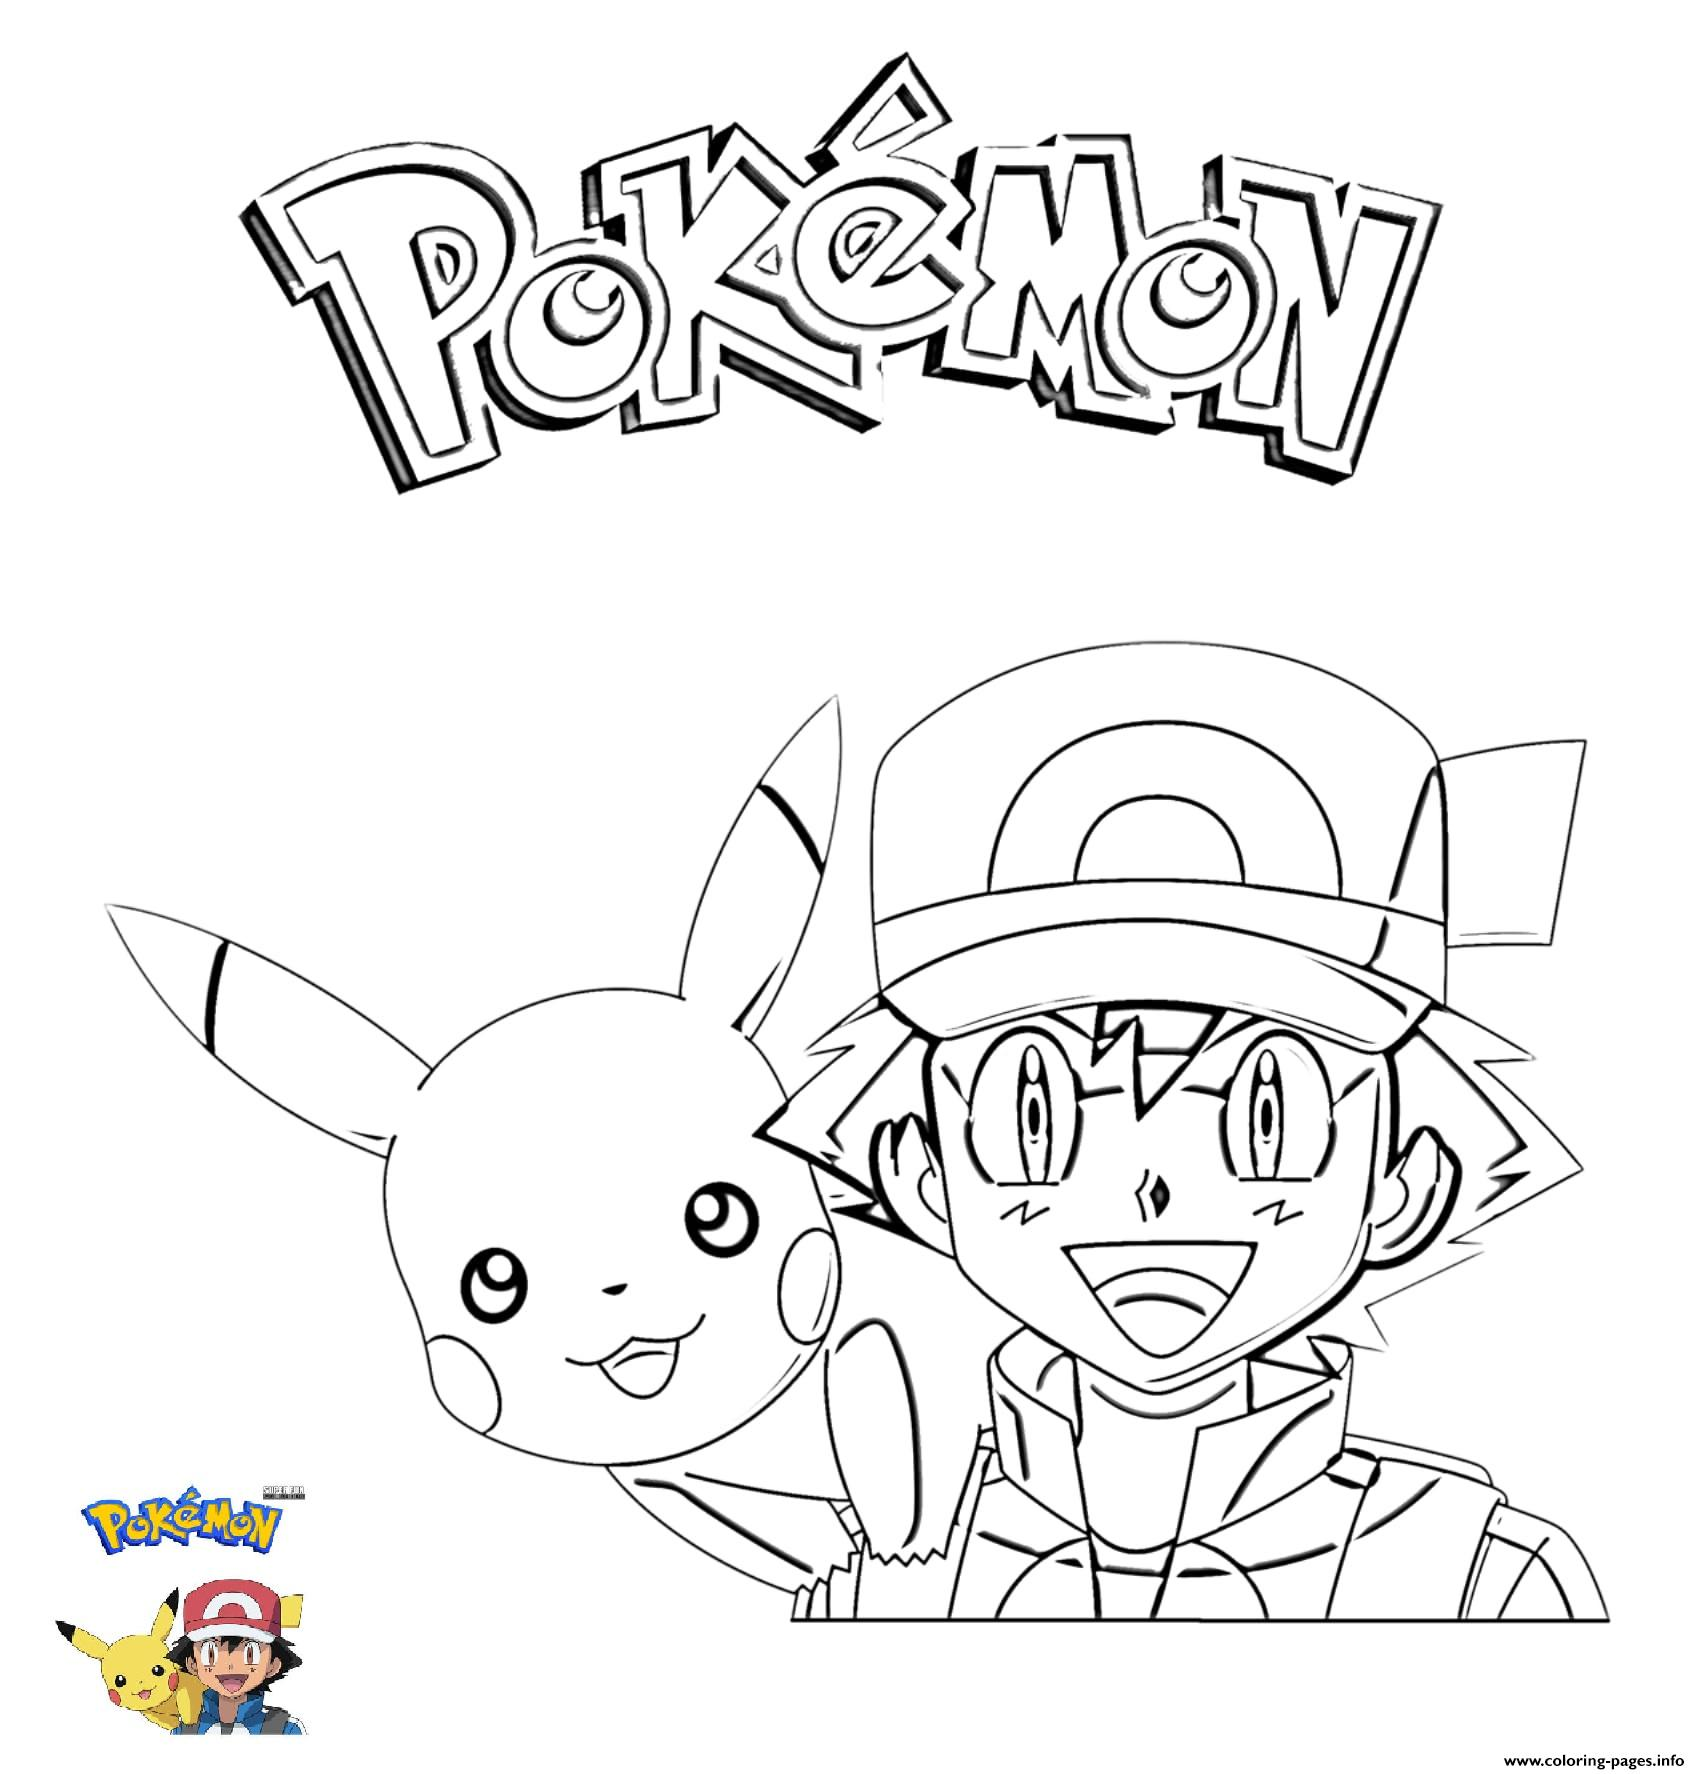 image regarding Pokemon Printable named 2 Ash And Pikachu Pokemon Coloring Web pages Printable